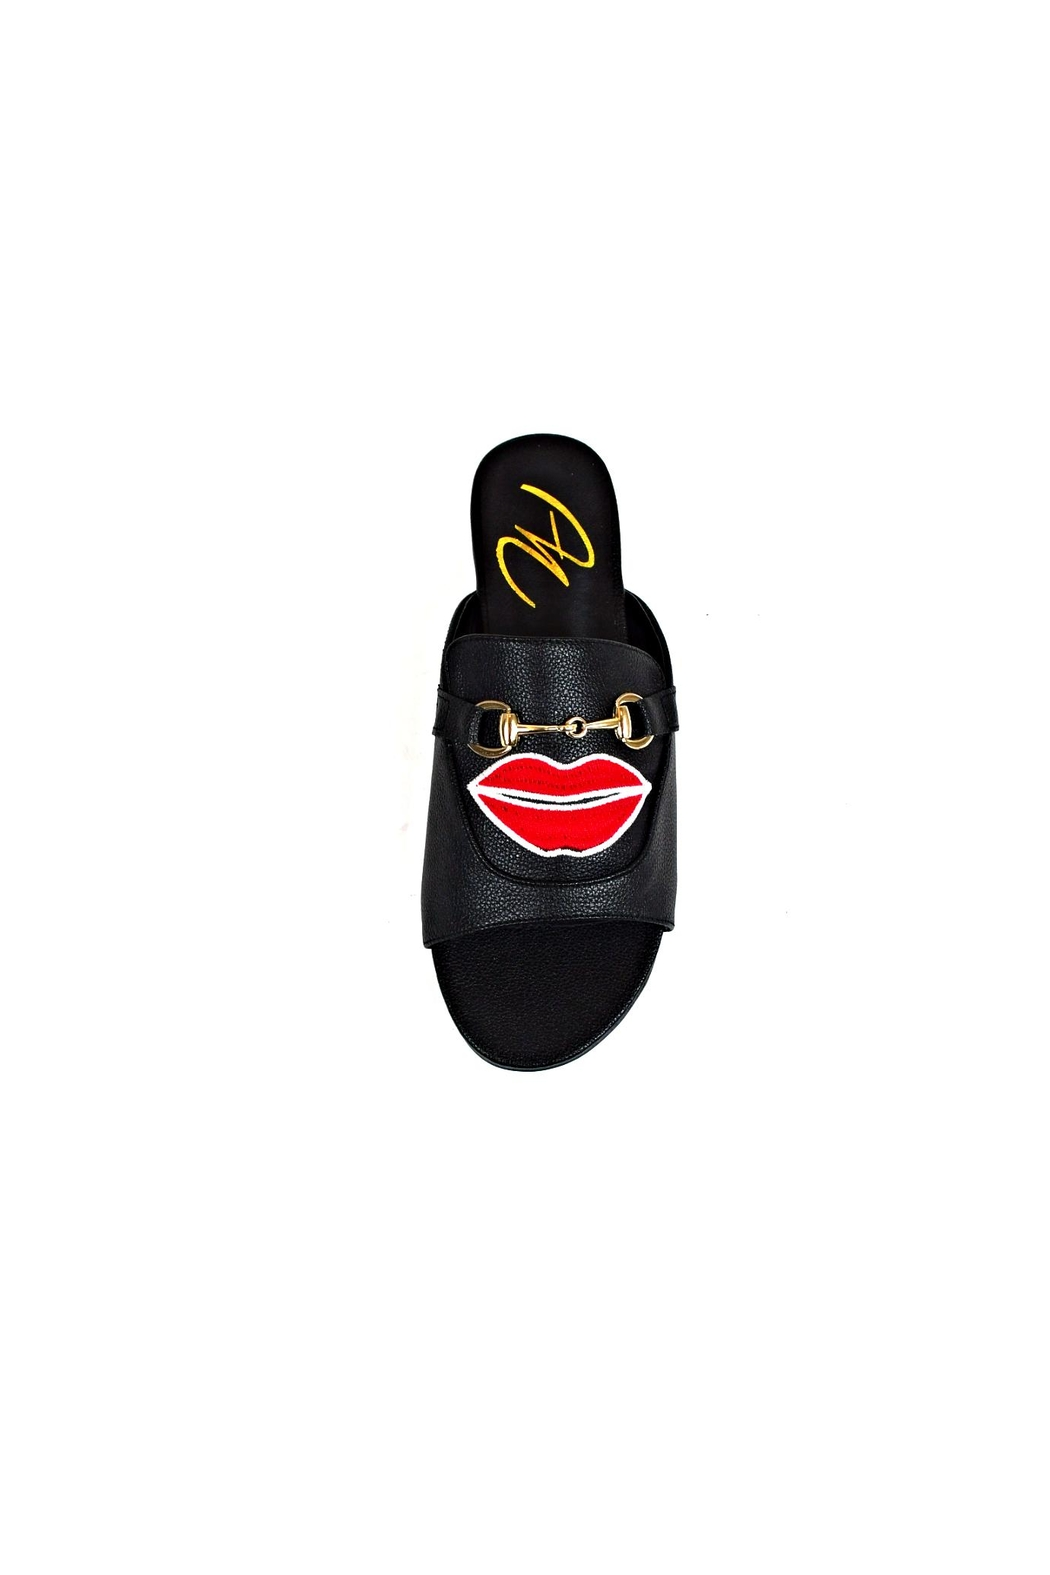 Ana Colina Boutique Black Lips Slide Sandals - Front Full Image